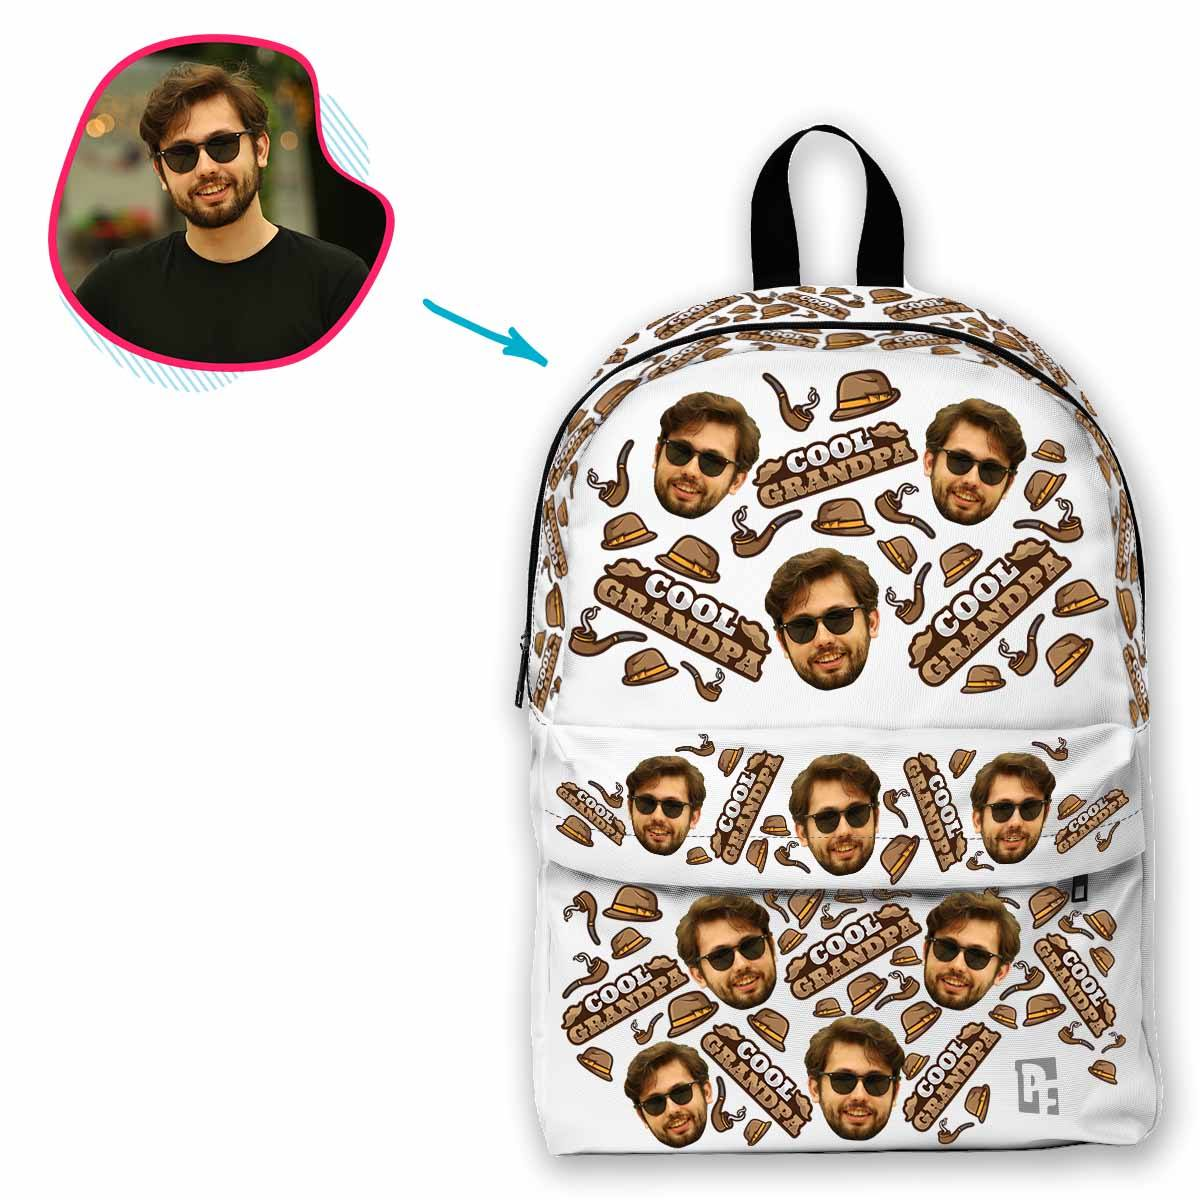 white Cool Grandfather classic backpack personalized with photo of face printed on it